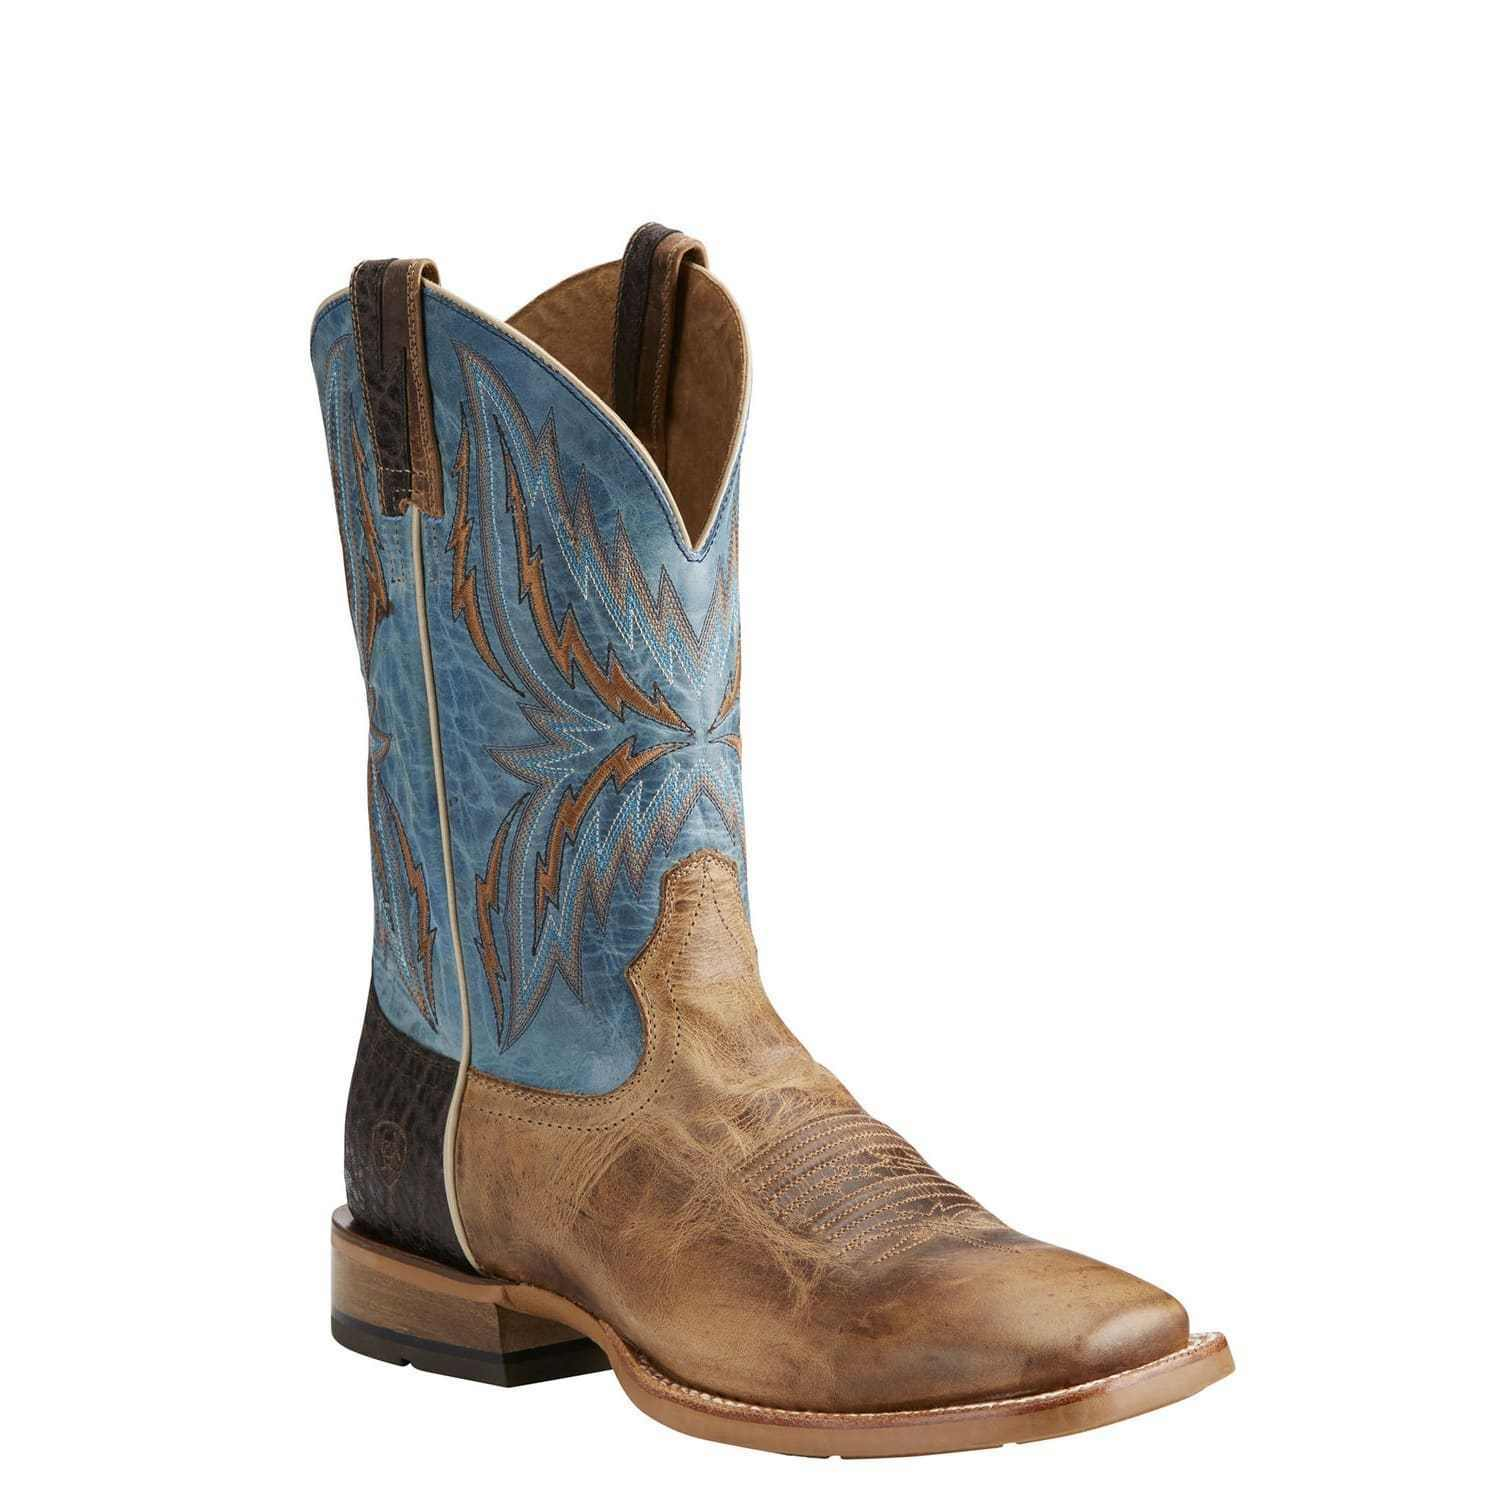 Ariat® Men's Arena Rebound Dusted Wheat & Heritage bluee Boots 10021679